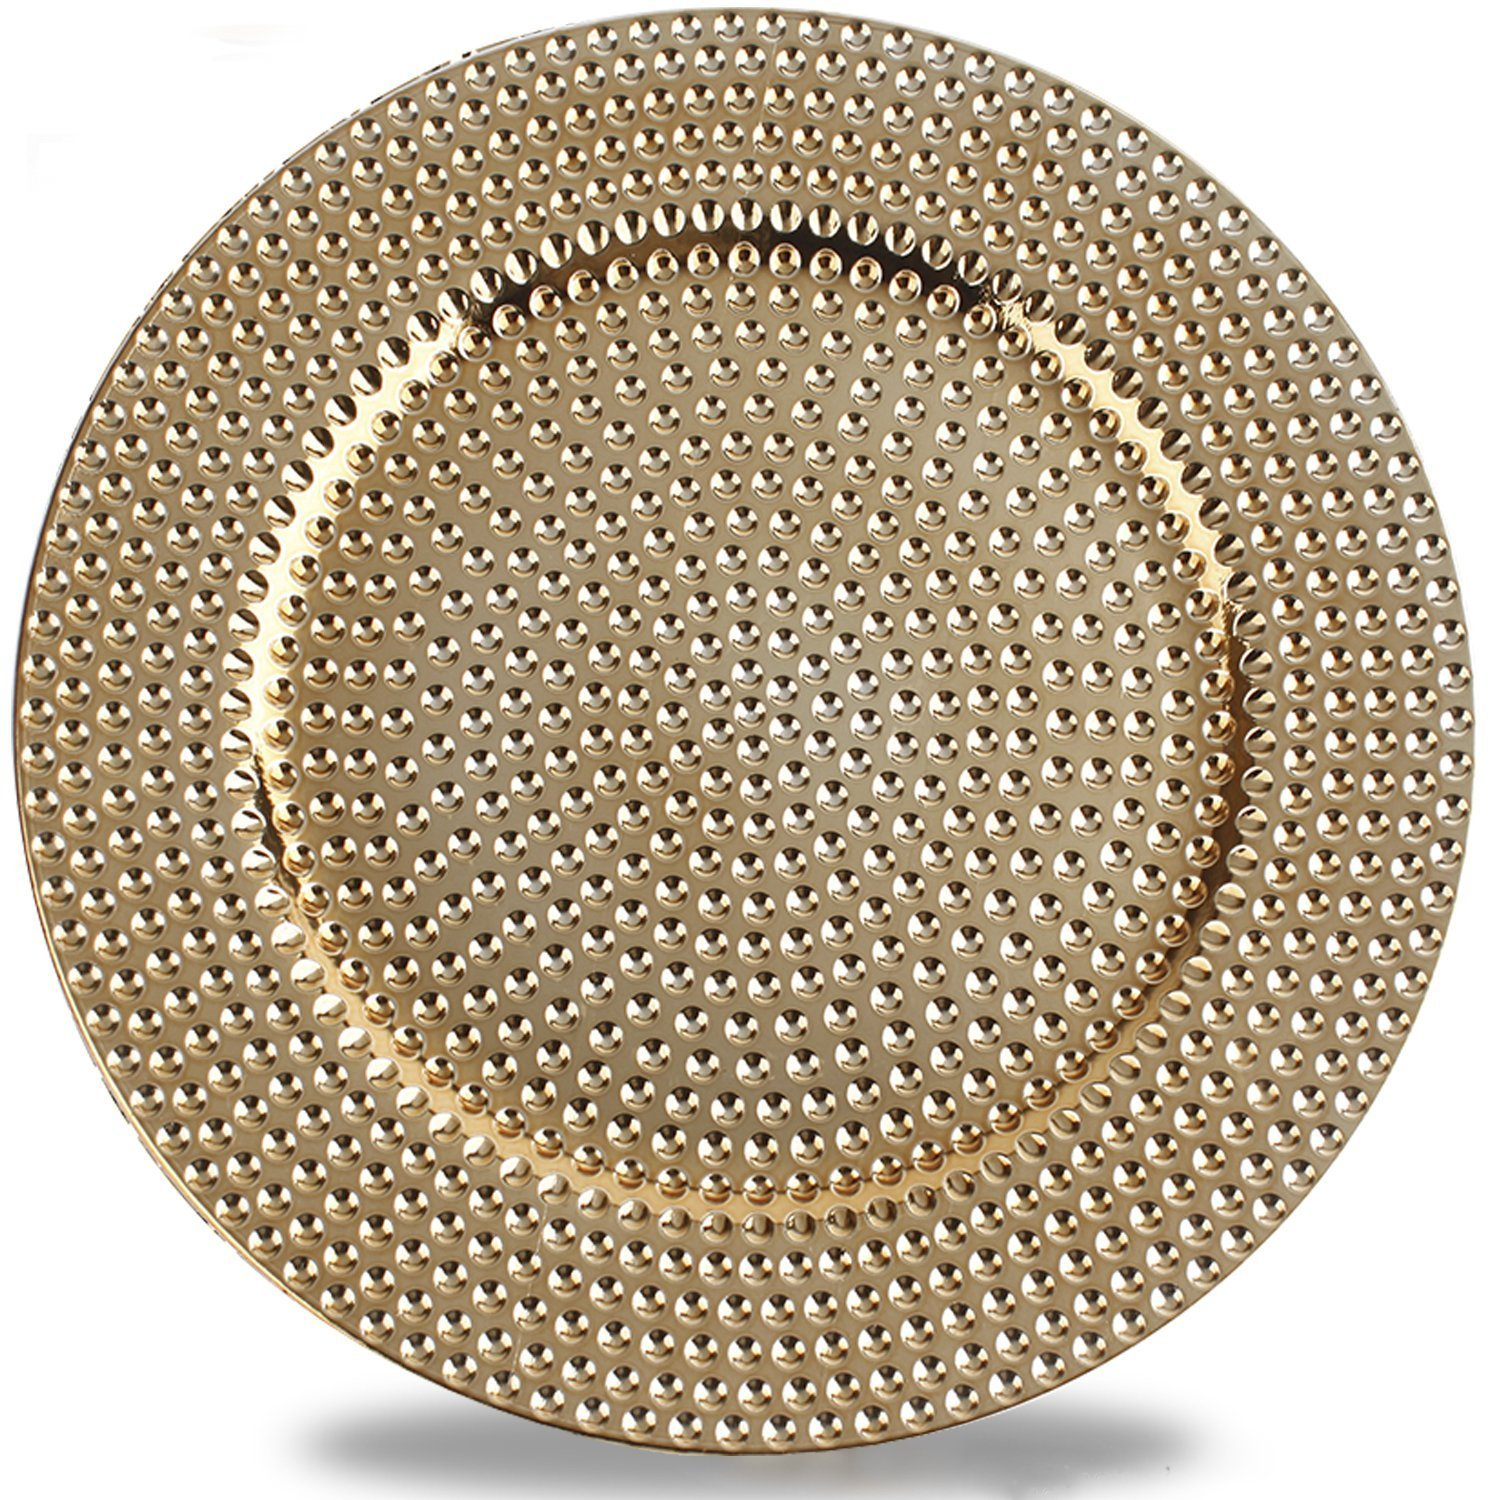 Benzara BM174288 Round Plastic Charger Plate, One Size, Gold